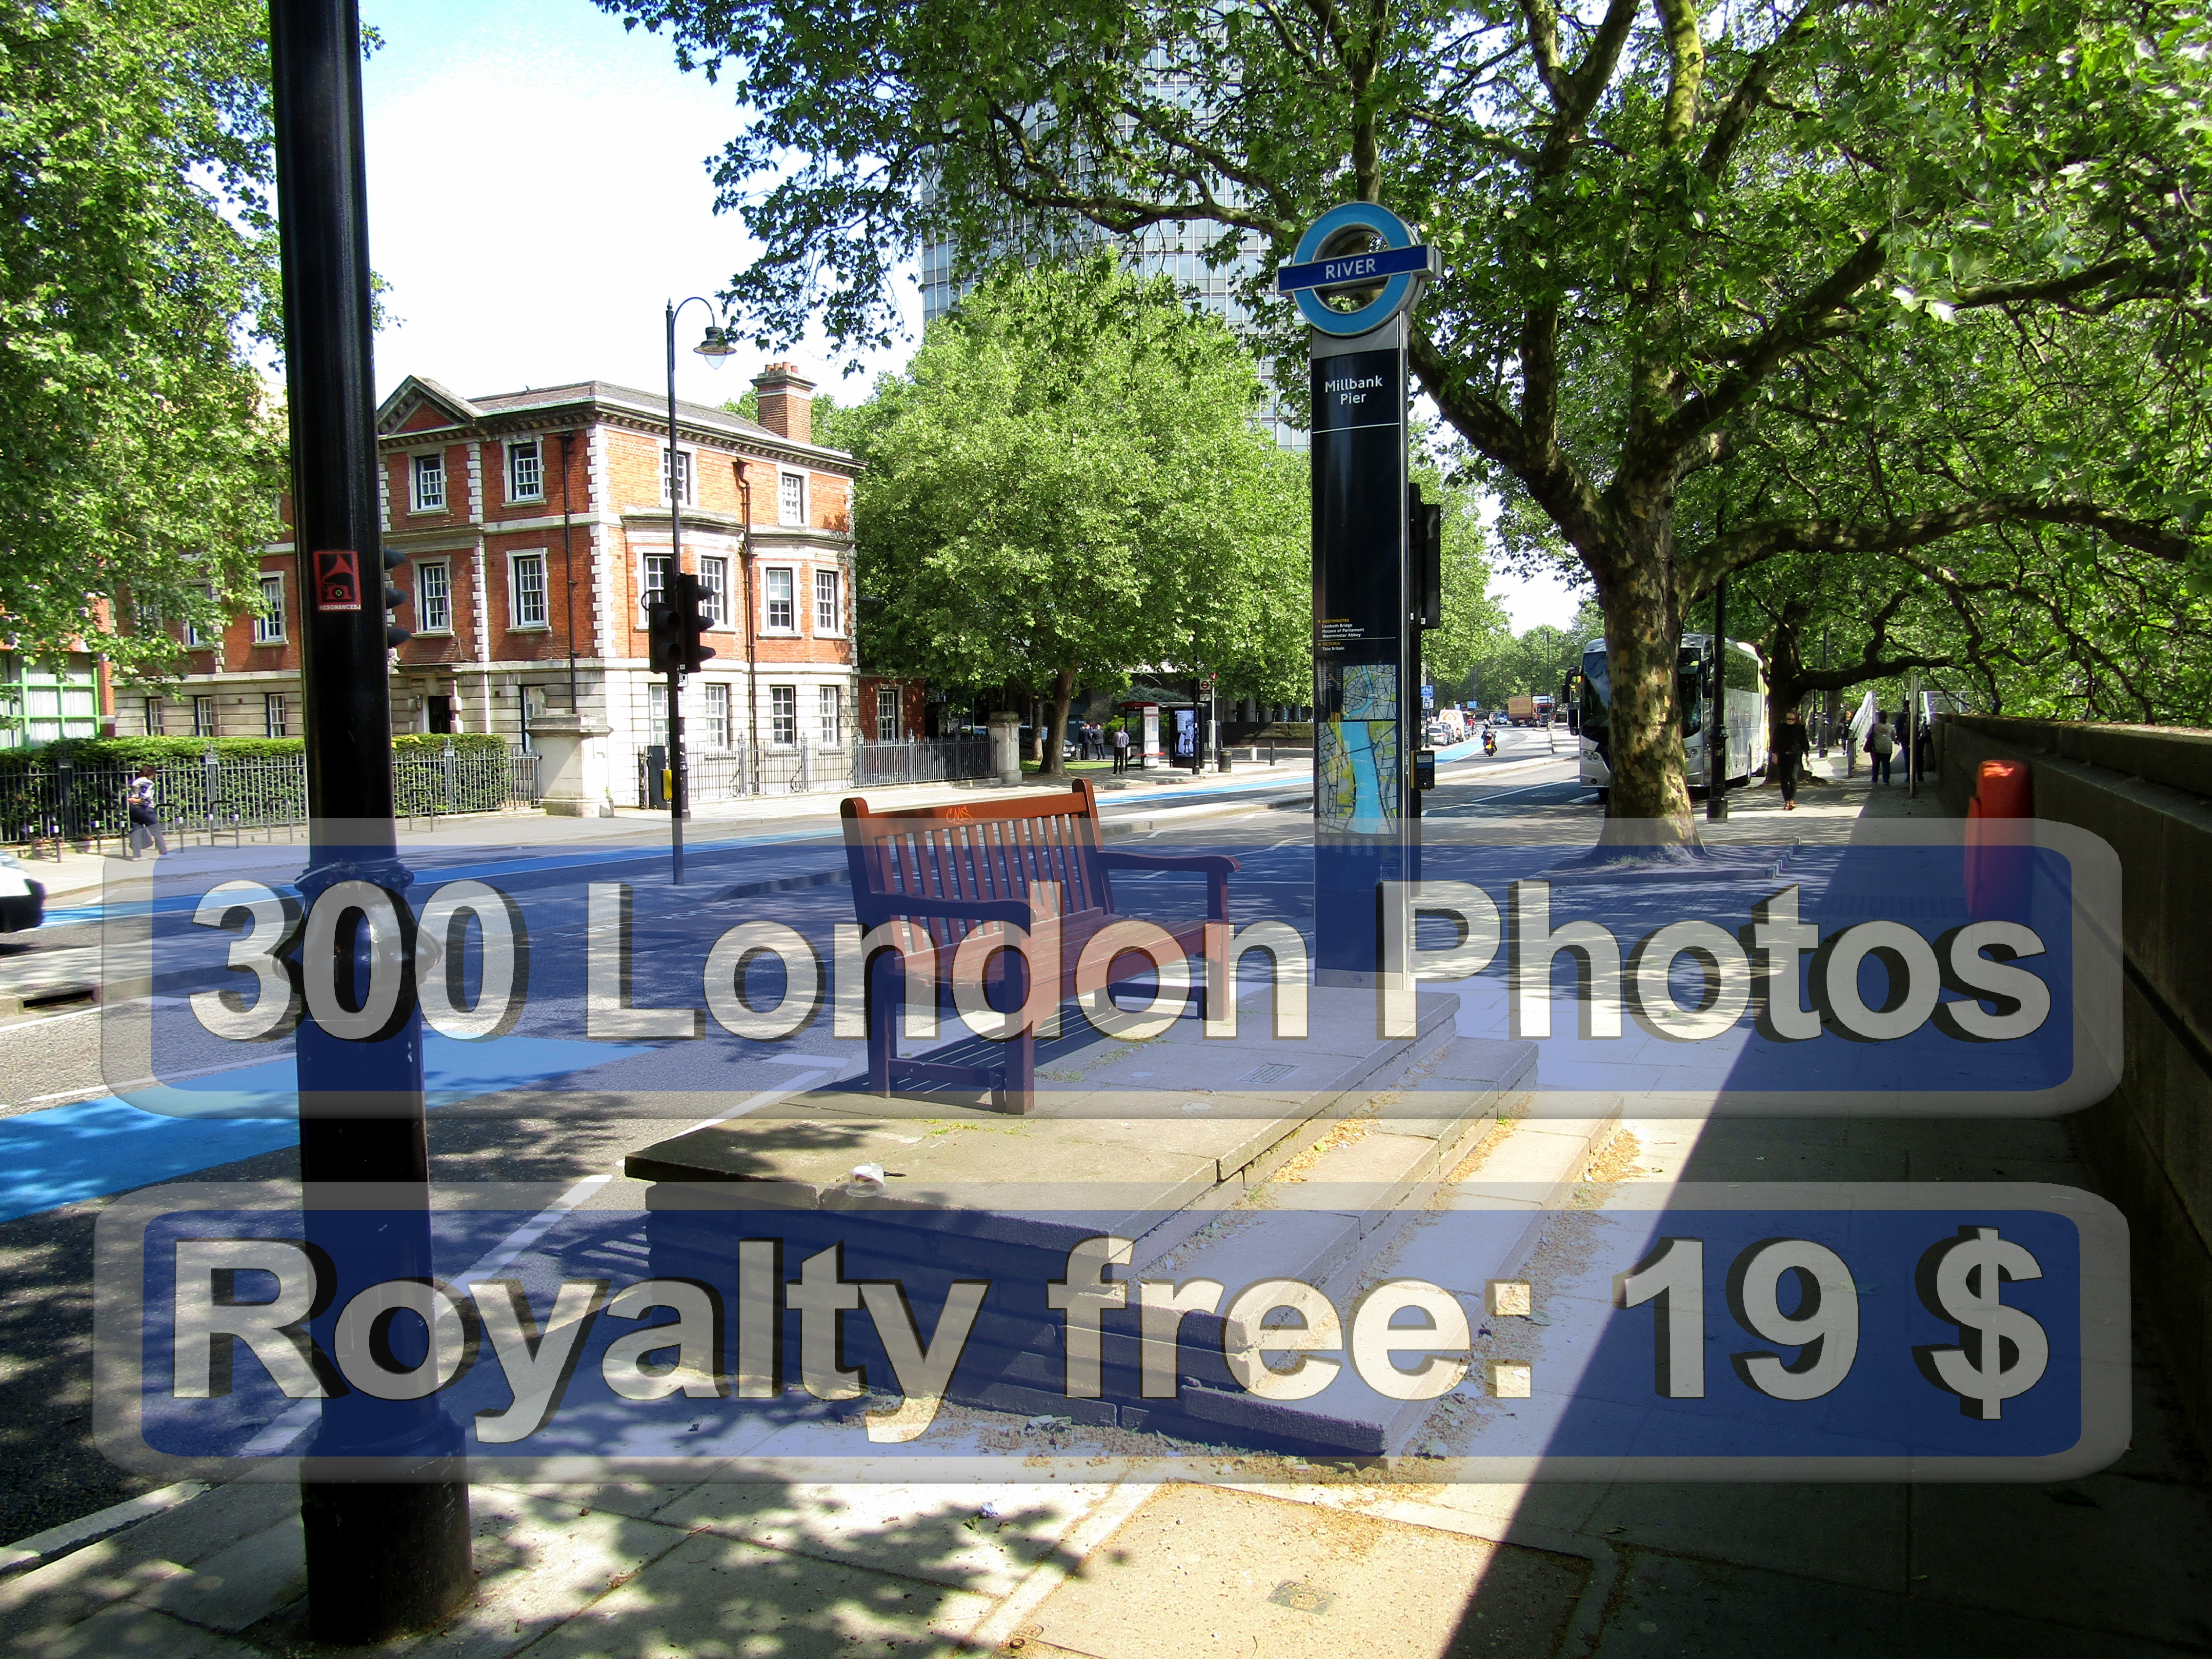 Studio 1 Photography London Reviews